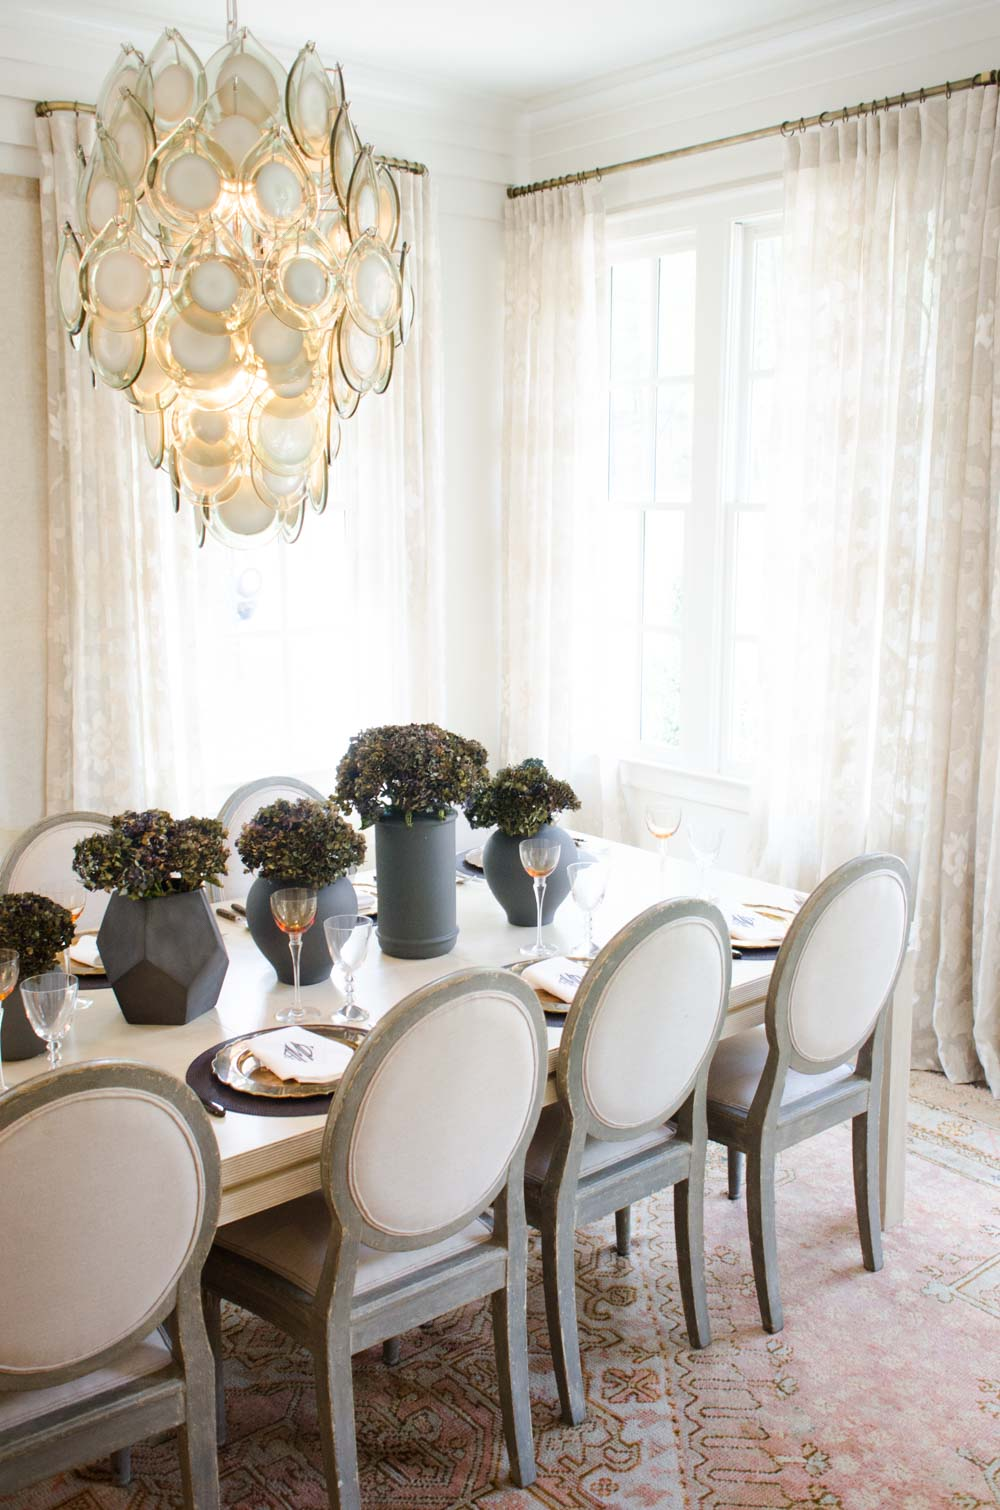 Bright serene dining room with shell chandelier